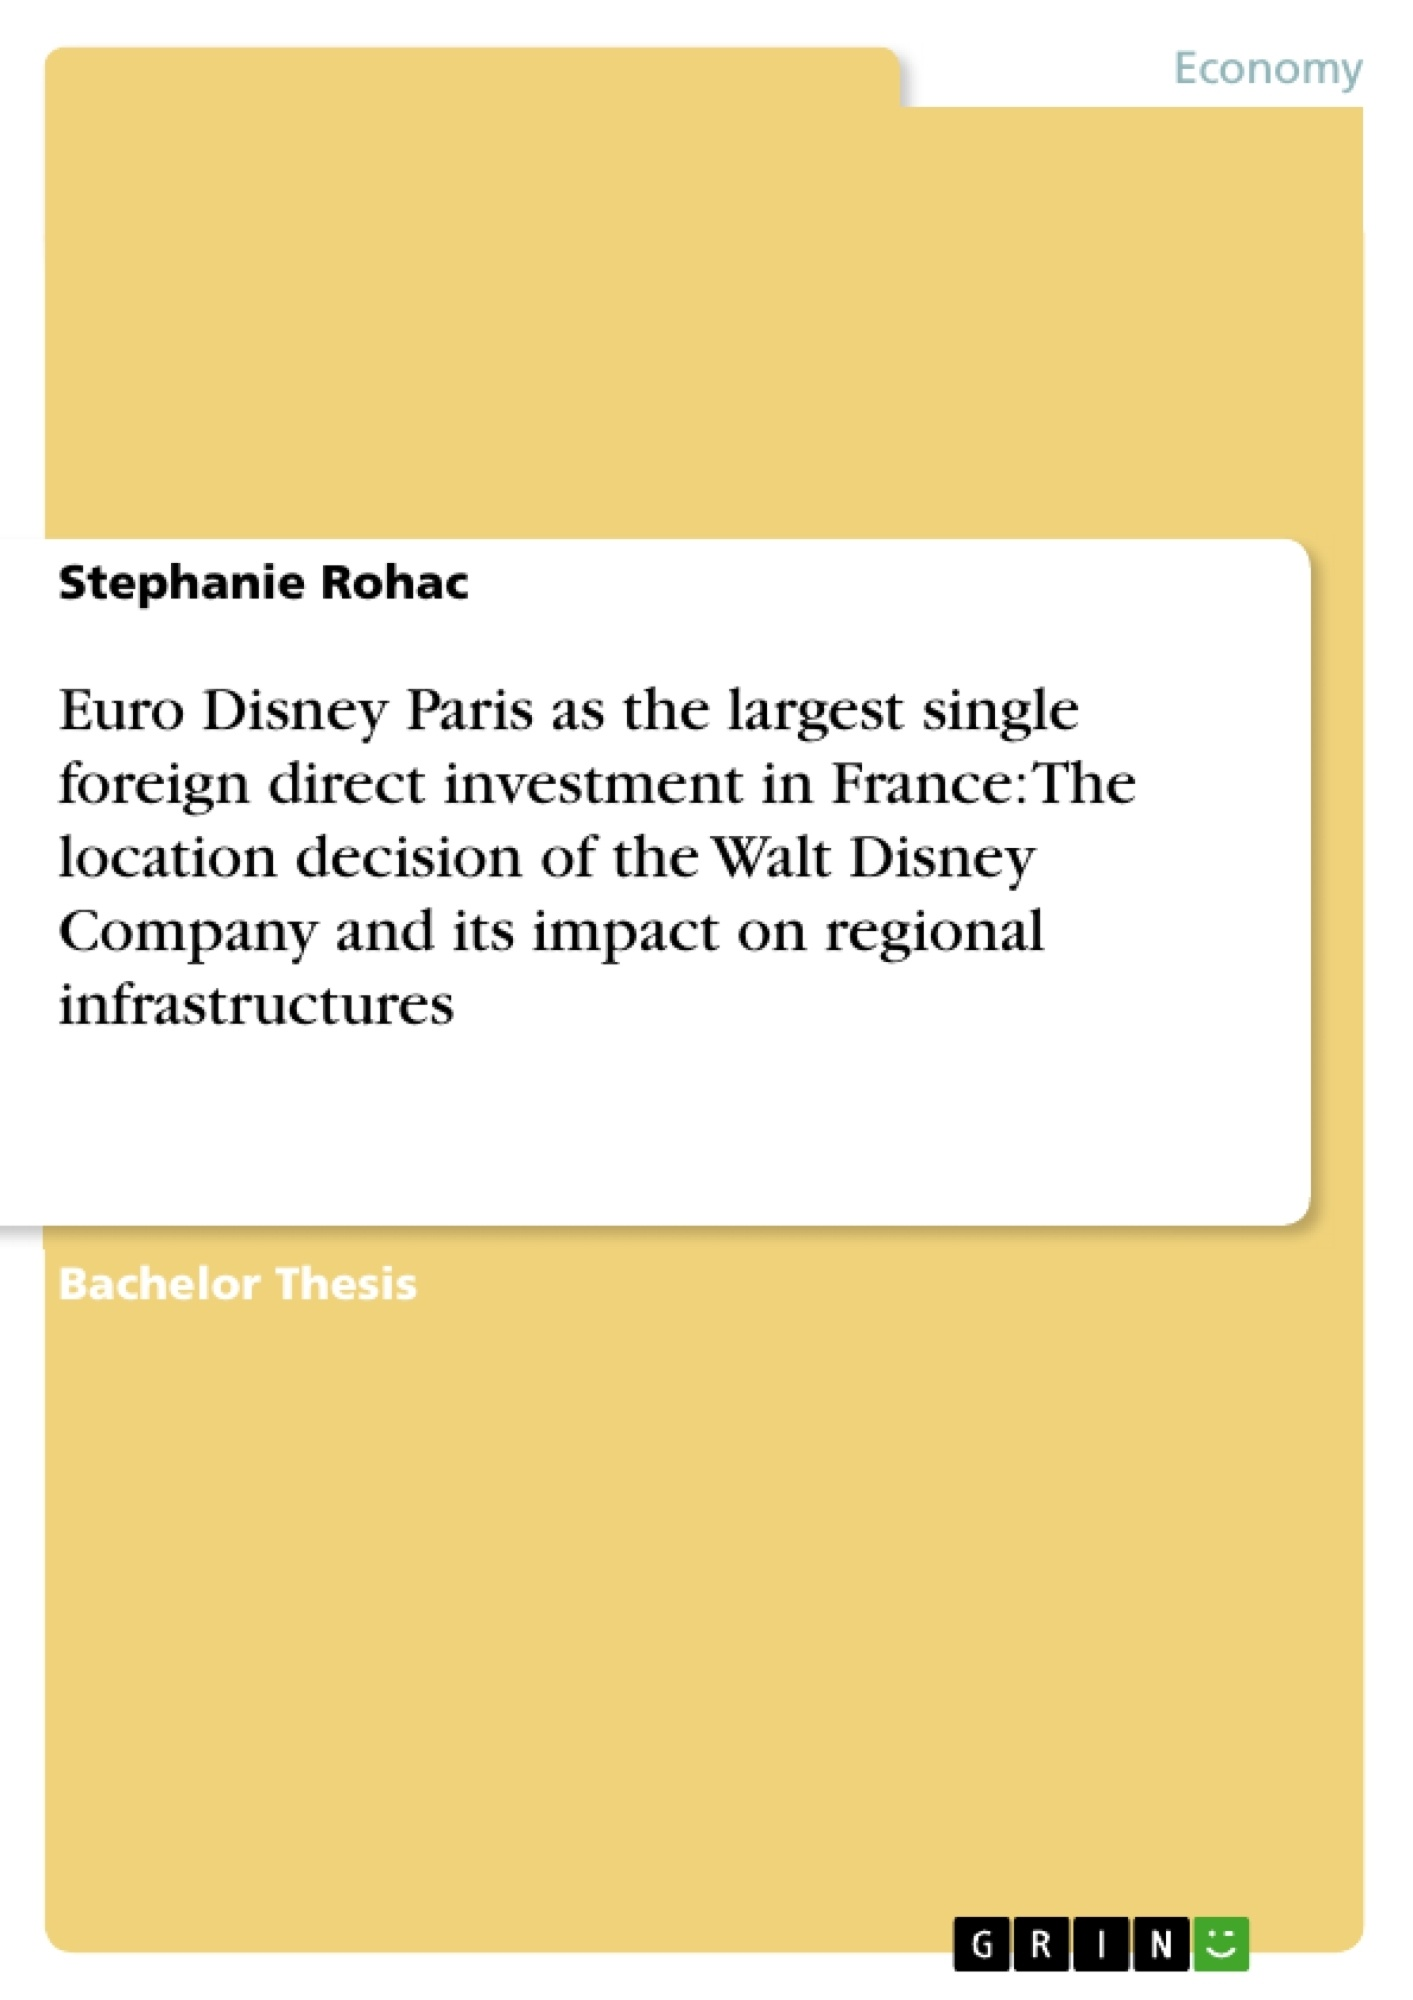 Title: Euro Disney Paris as the largest single foreign direct investment in France: The location decision of the Walt Disney Company and its impact on regional infrastructures